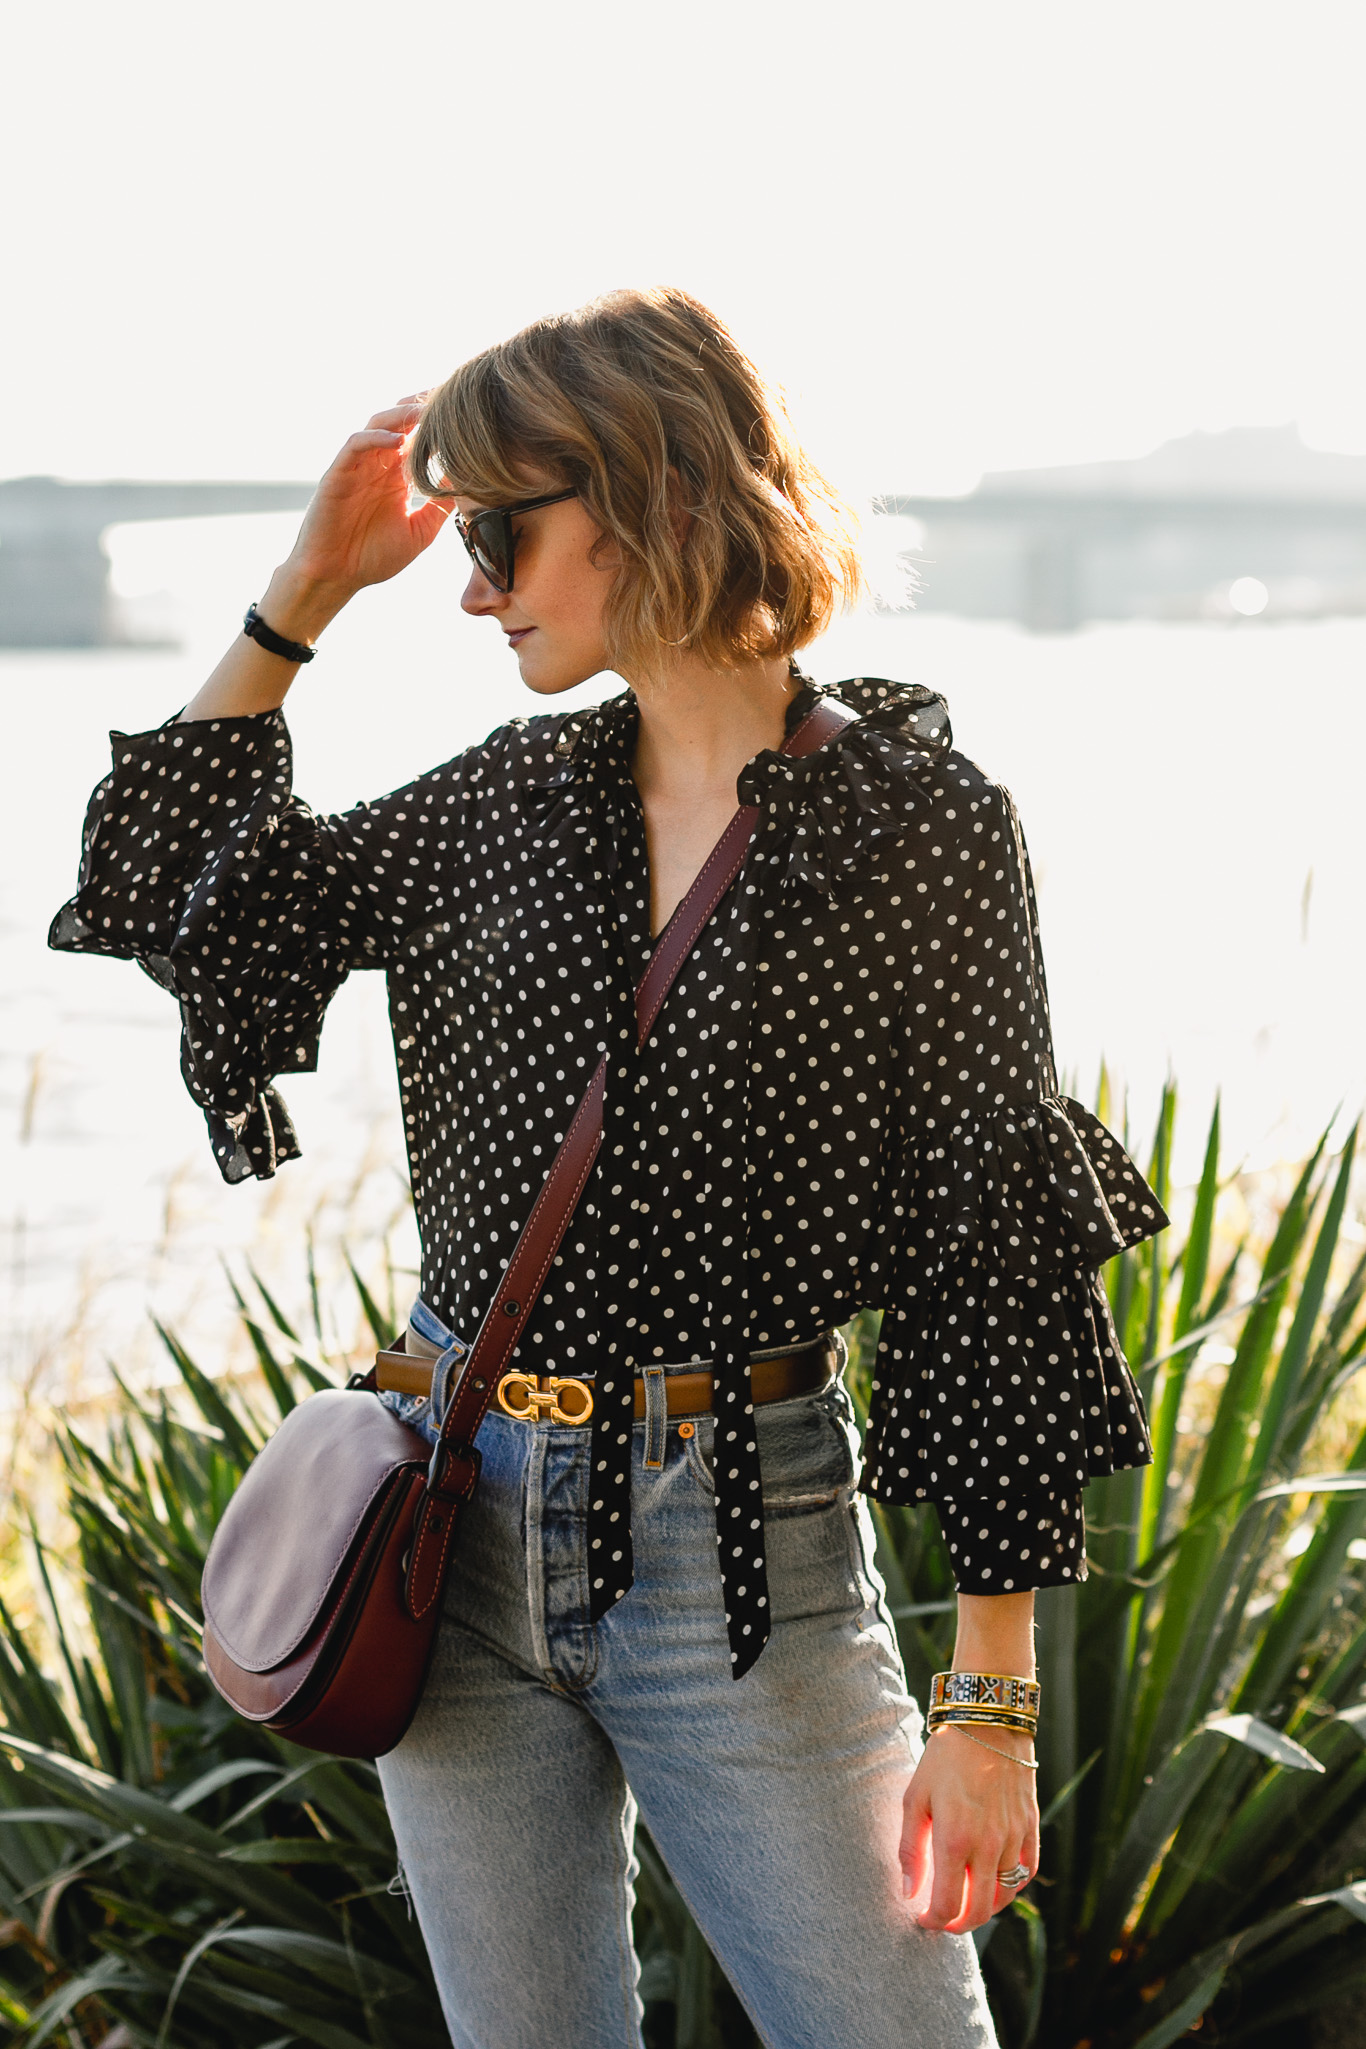 ruffled polka dot top, Ferragamo belt, and Coach bag